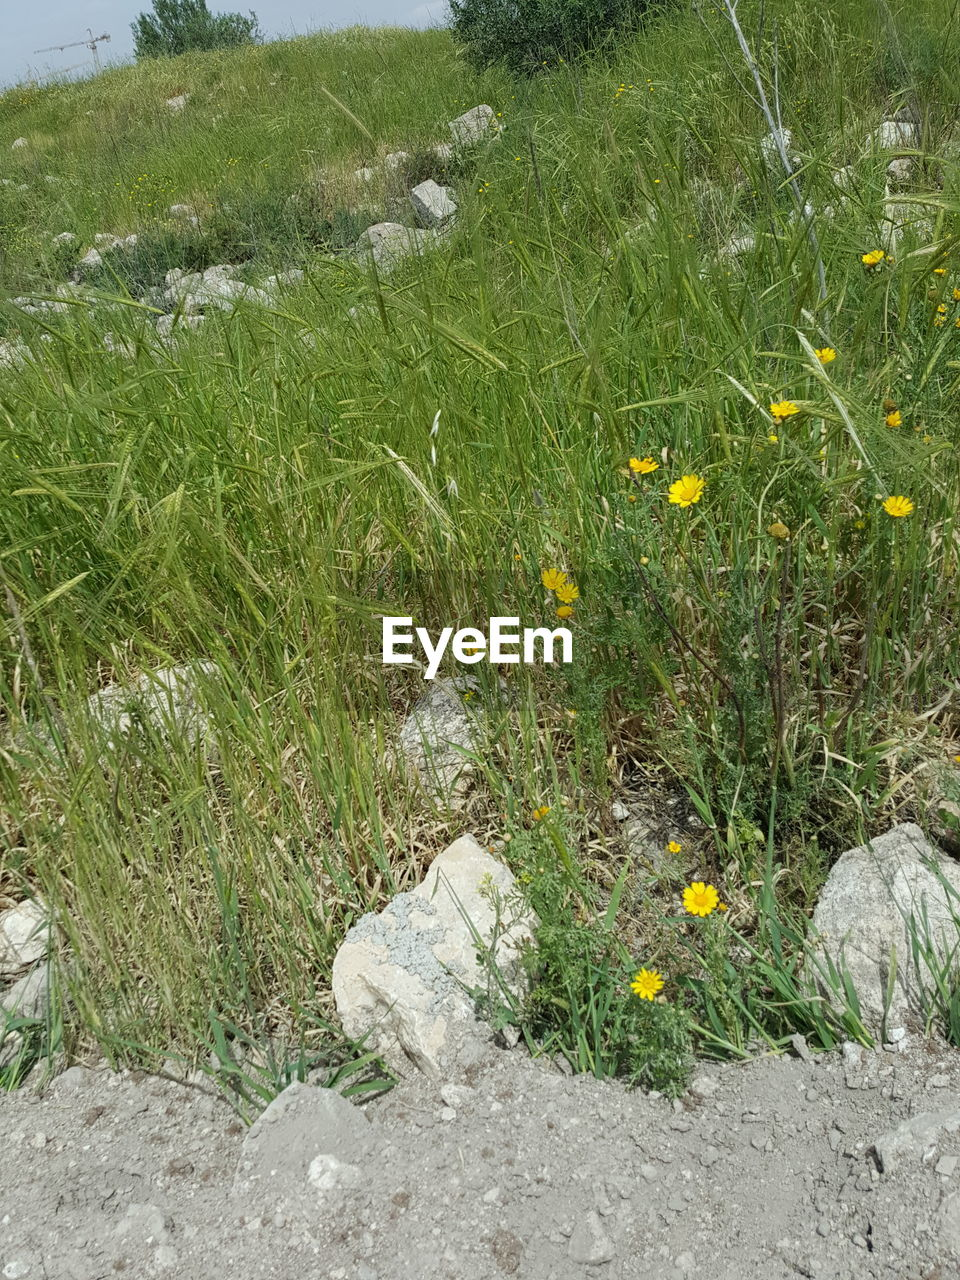 plant, growth, flowering plant, flower, grass, green color, nature, land, no people, field, day, beauty in nature, high angle view, fragility, vulnerability, freshness, outdoors, tranquility, rock, solid